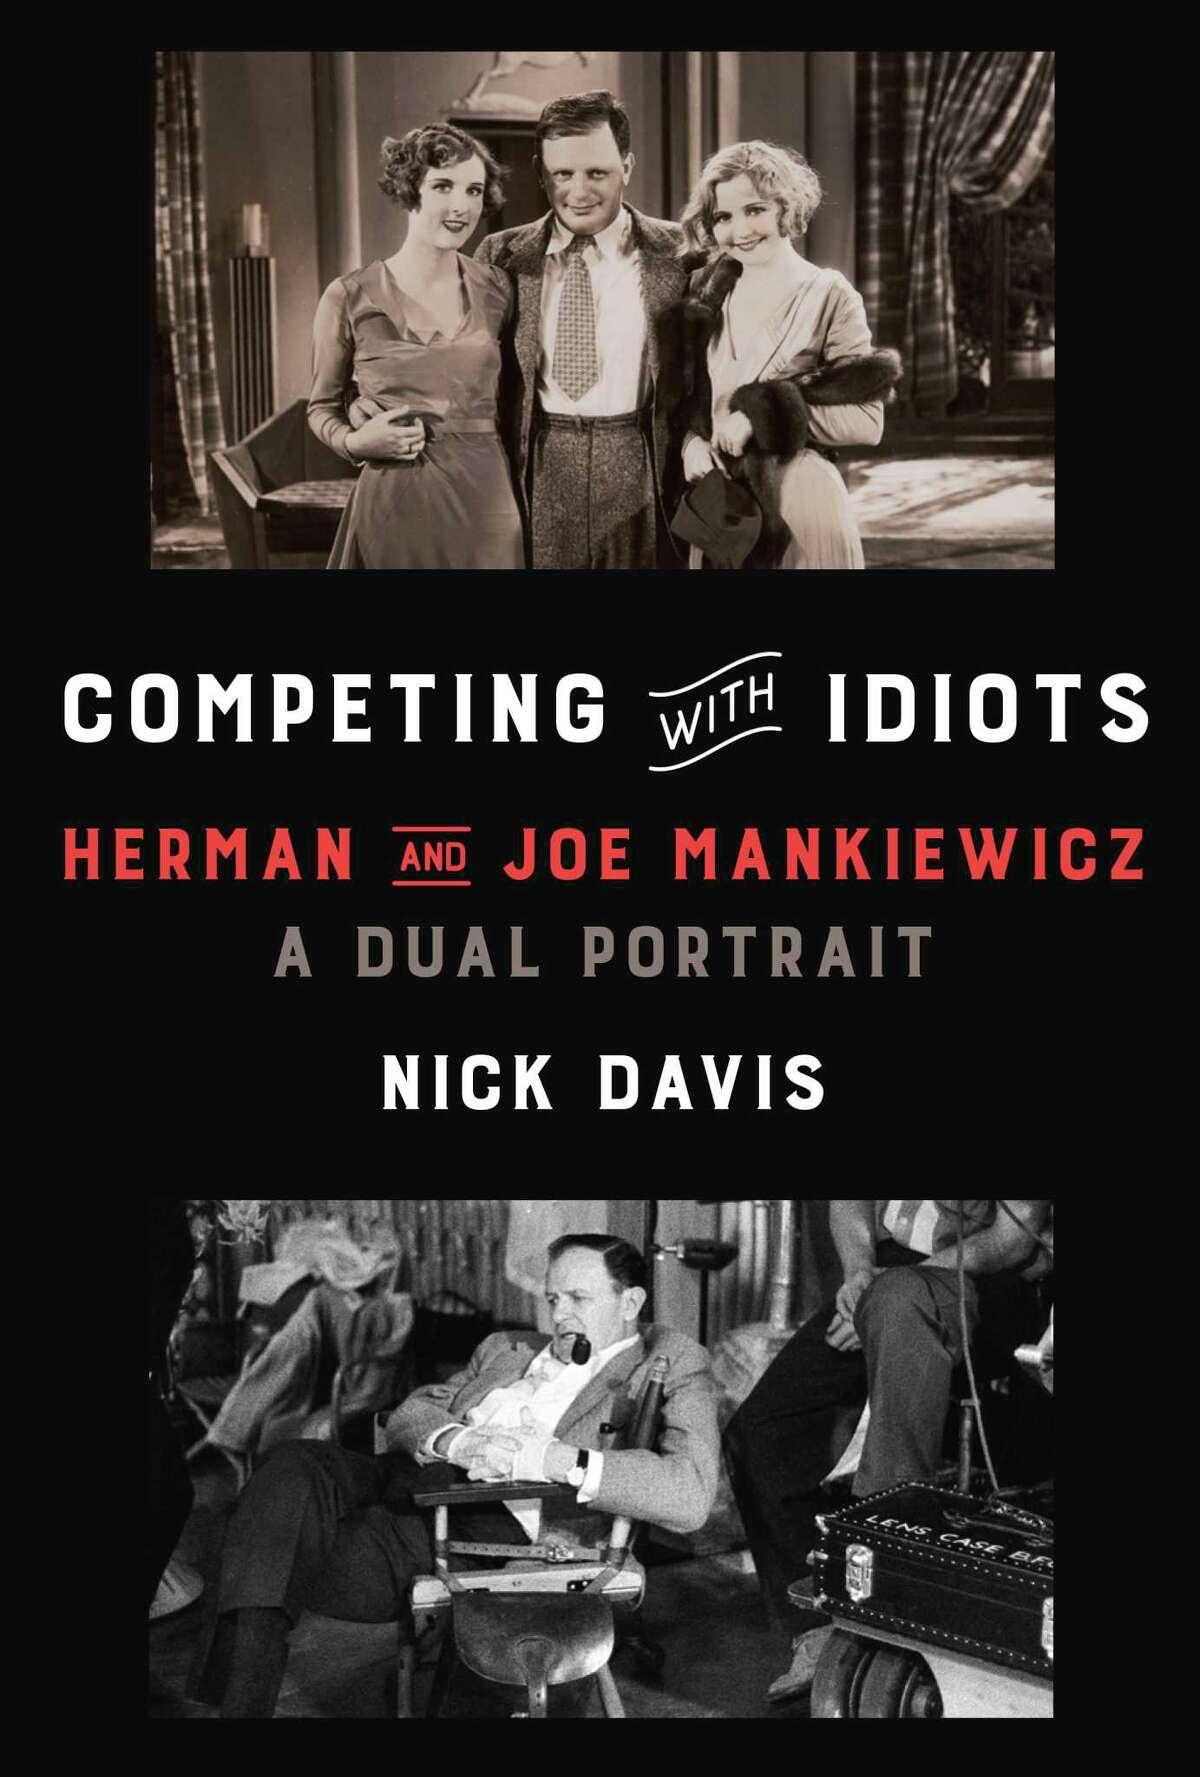 Competing with Idiots: Herman and Joe Mankiewicz, a Dual Portrait